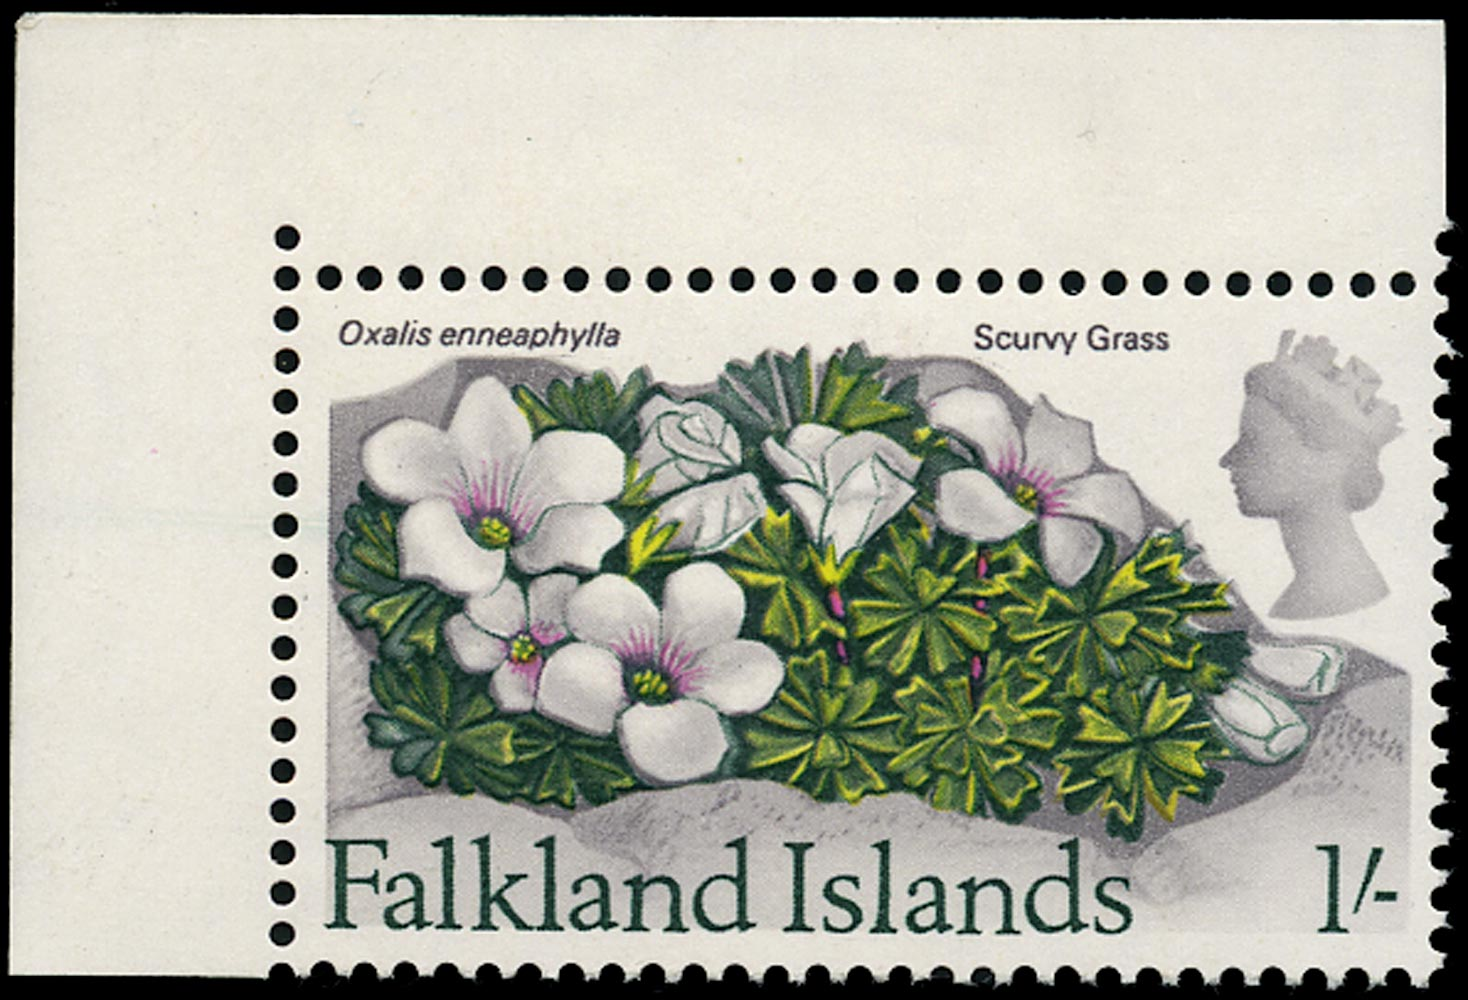 FALKLAND ISLANDS 1968  SG240w Mint unmounted Flowers 1s Scurvy Grass variety watermark inverted